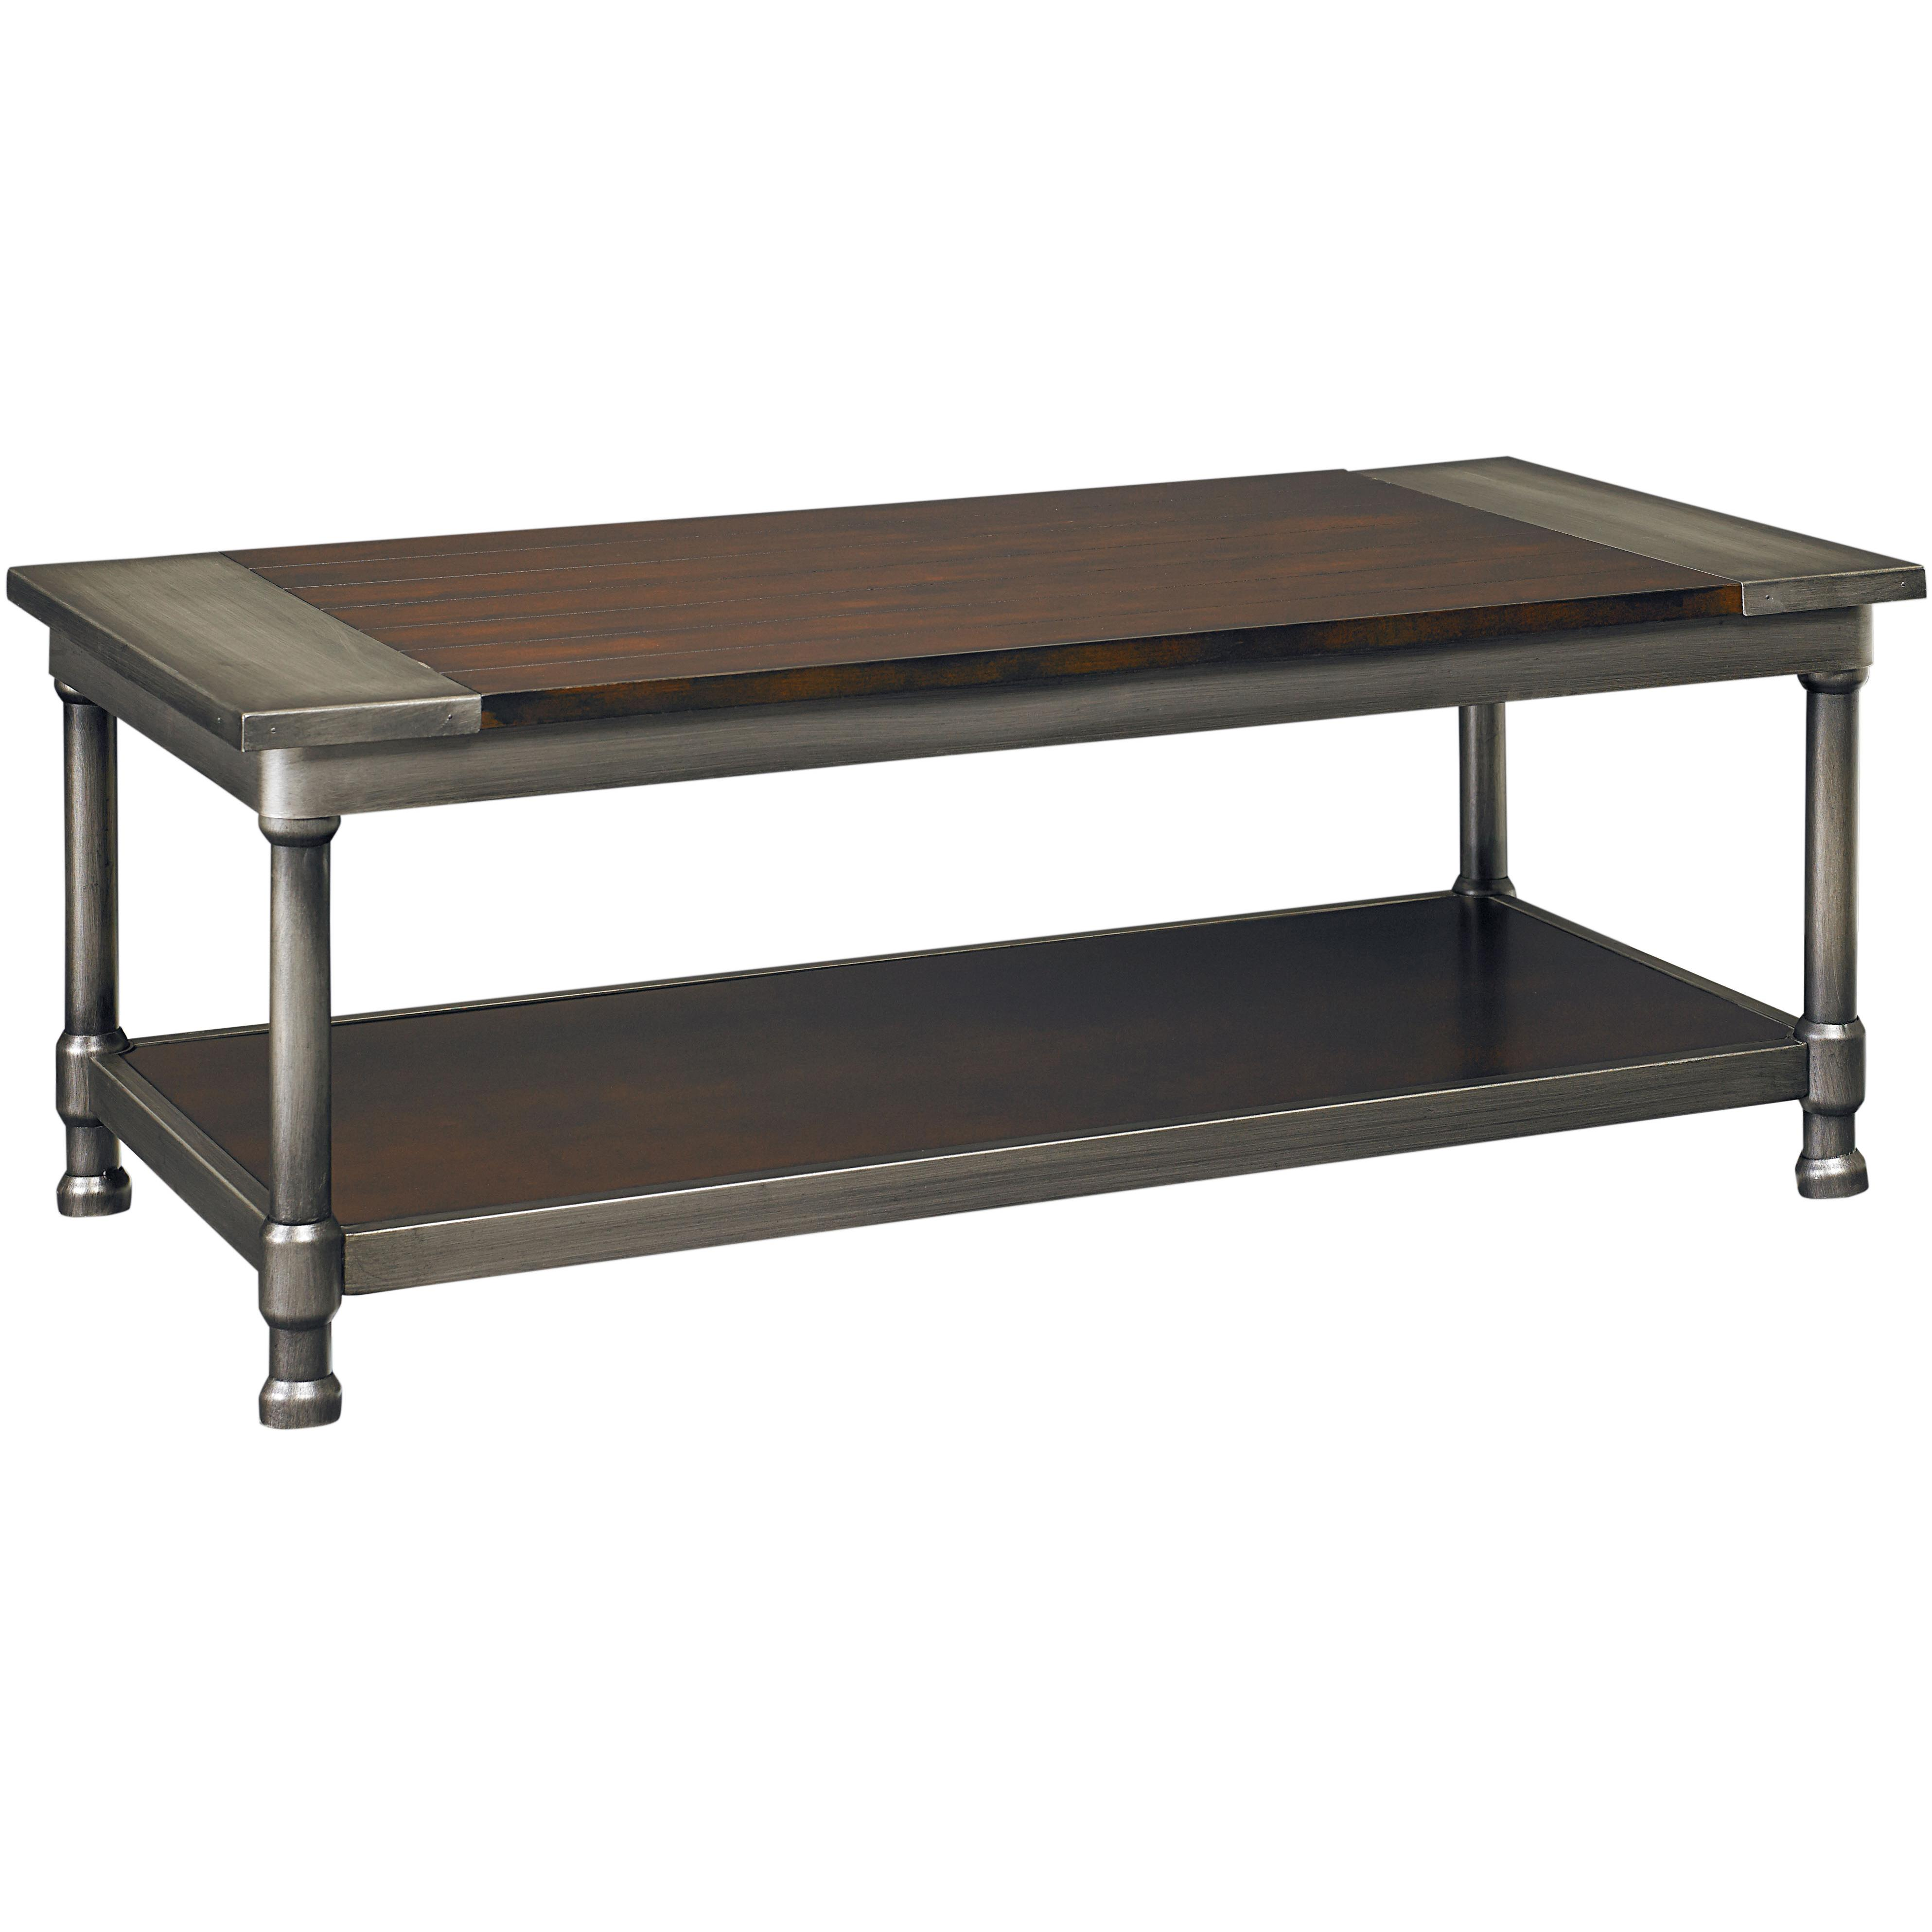 Standard Furniture Hudson Cocktail Table and 2 End Table Set - Royal Furniture - Occasional Group